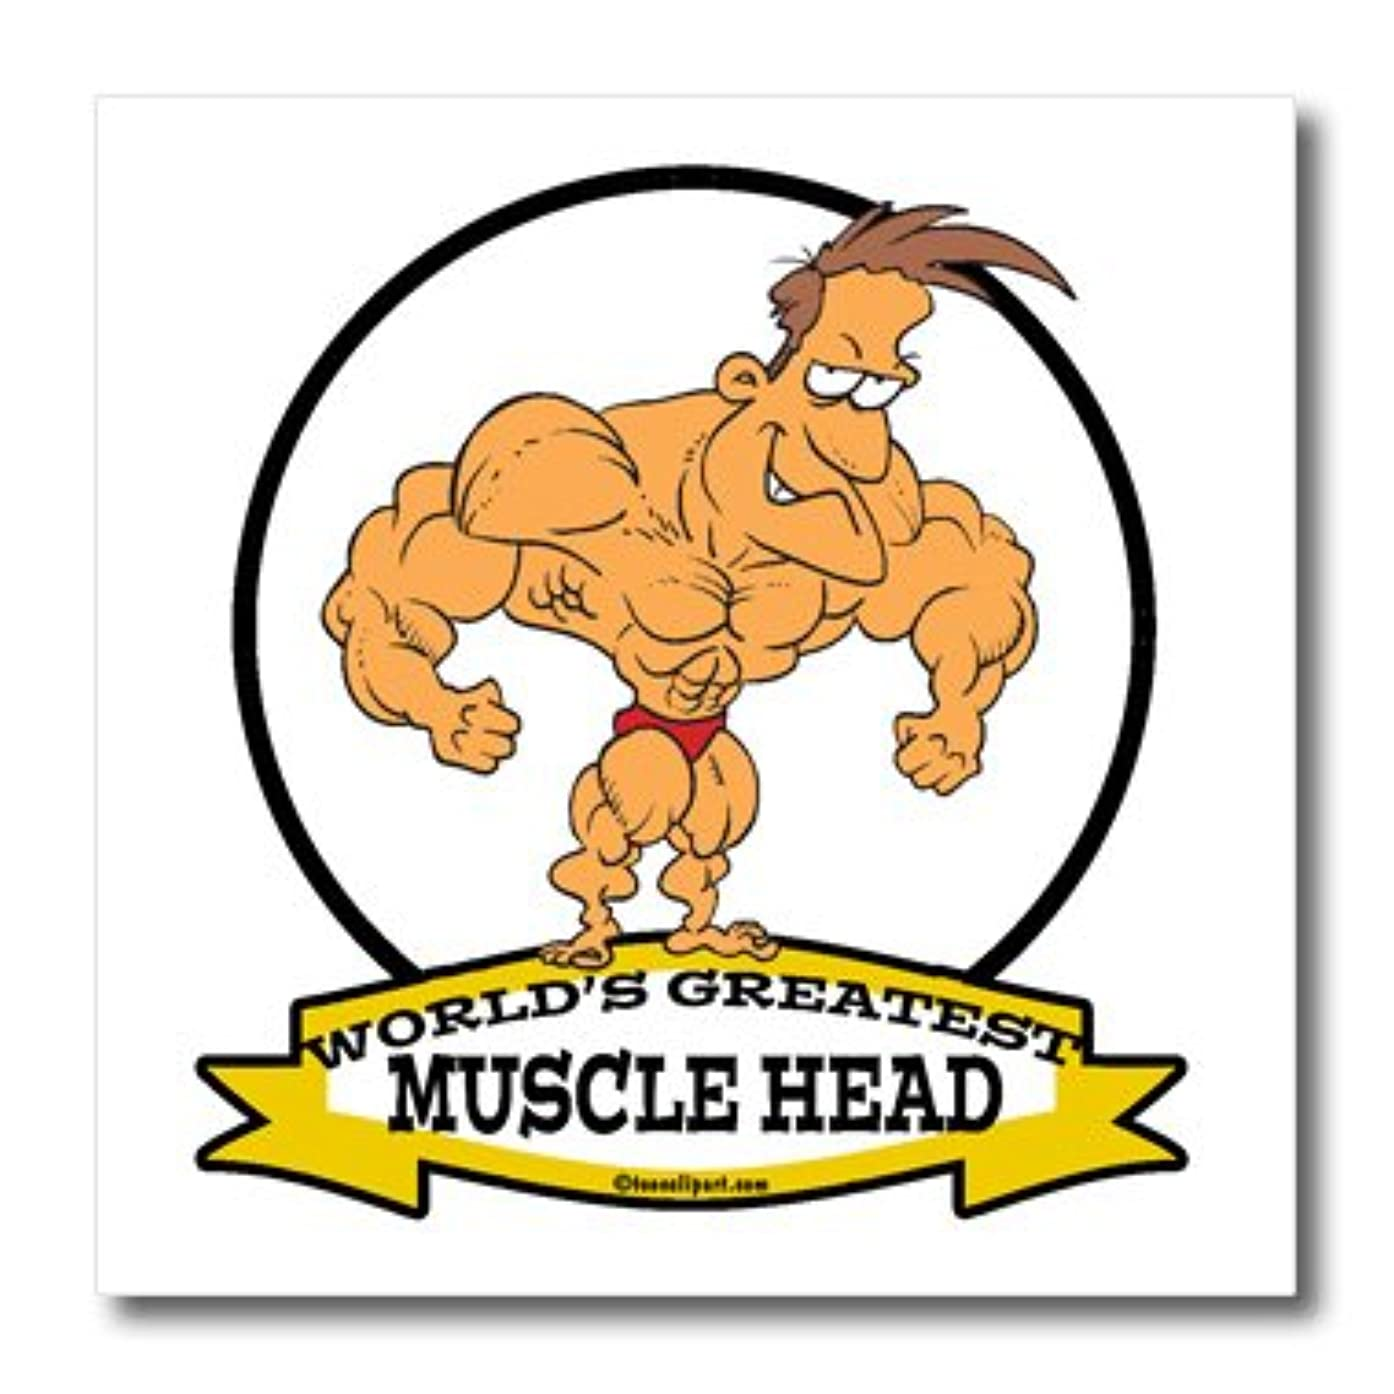 3dRose ht_103374_3 Funny Worlds Greatest Muscle Head Men Cartoon-Iron on Heat Transfer for White Material, 10 by 10-Inch